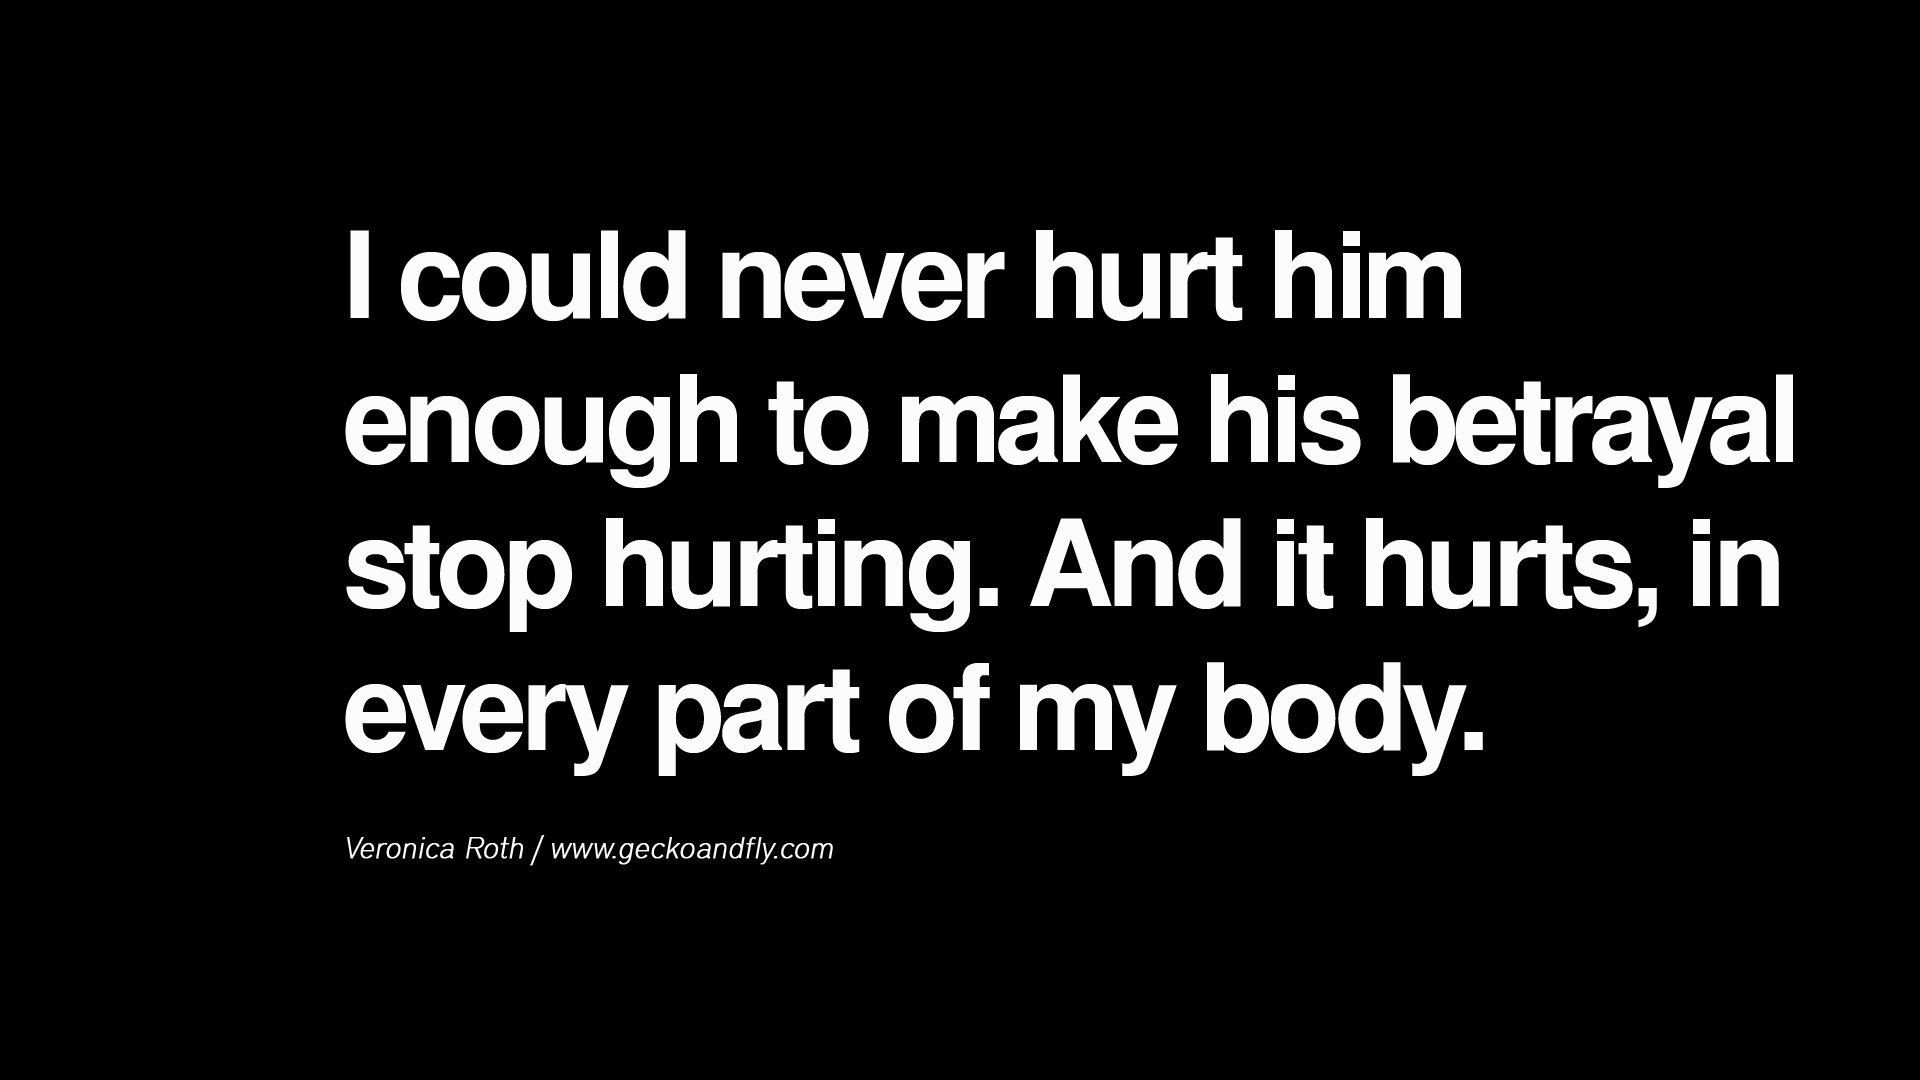 Betrayal Quotes: Quotes About Betrayal And Hurt. QuotesGram